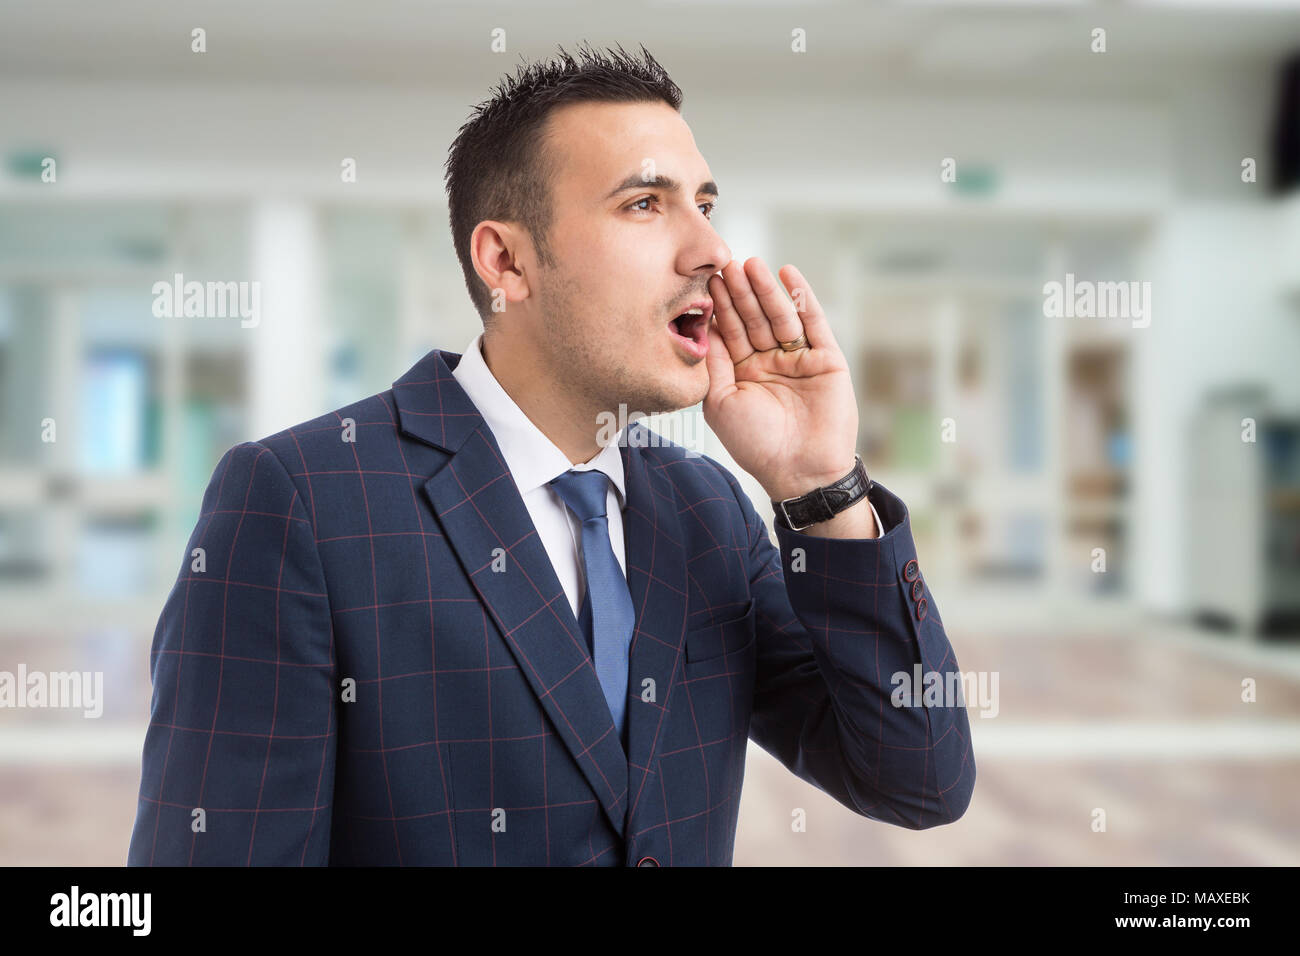 Young real estate agent or realtor shouting with hand on mouth as loudly calling or yelling on lobby background - Stock Image